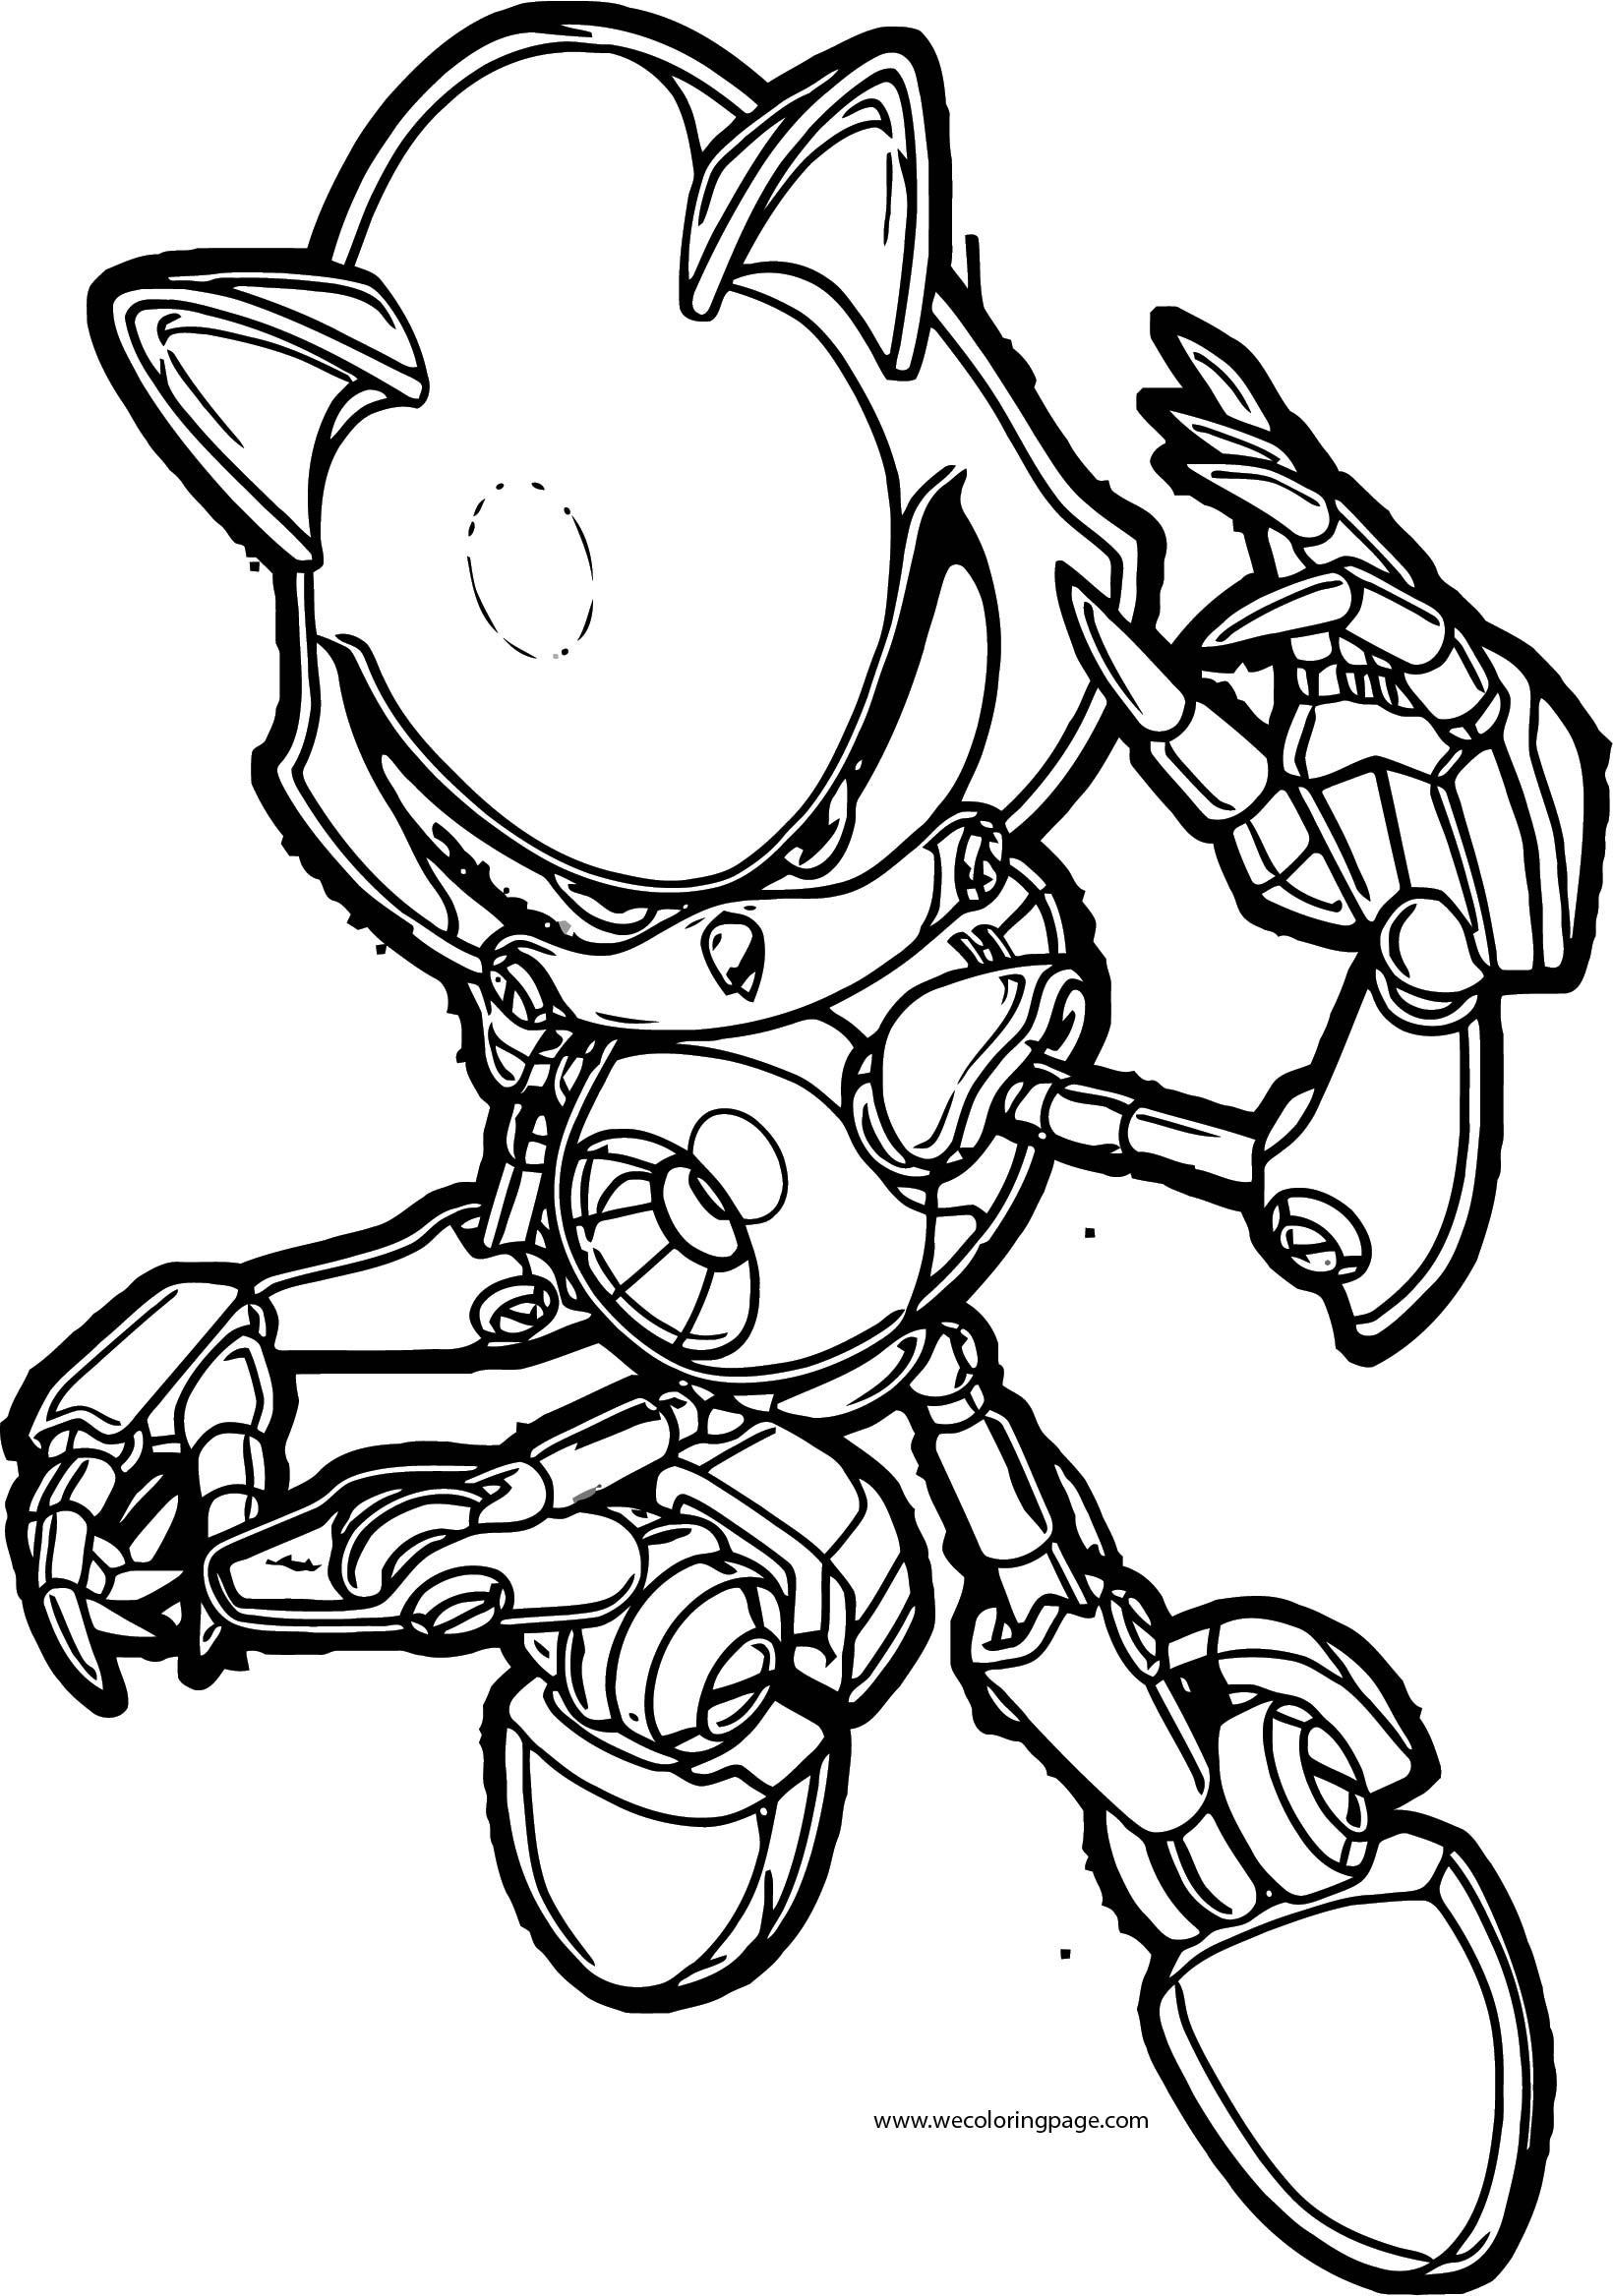 robot sonic the hedgehog coloring page